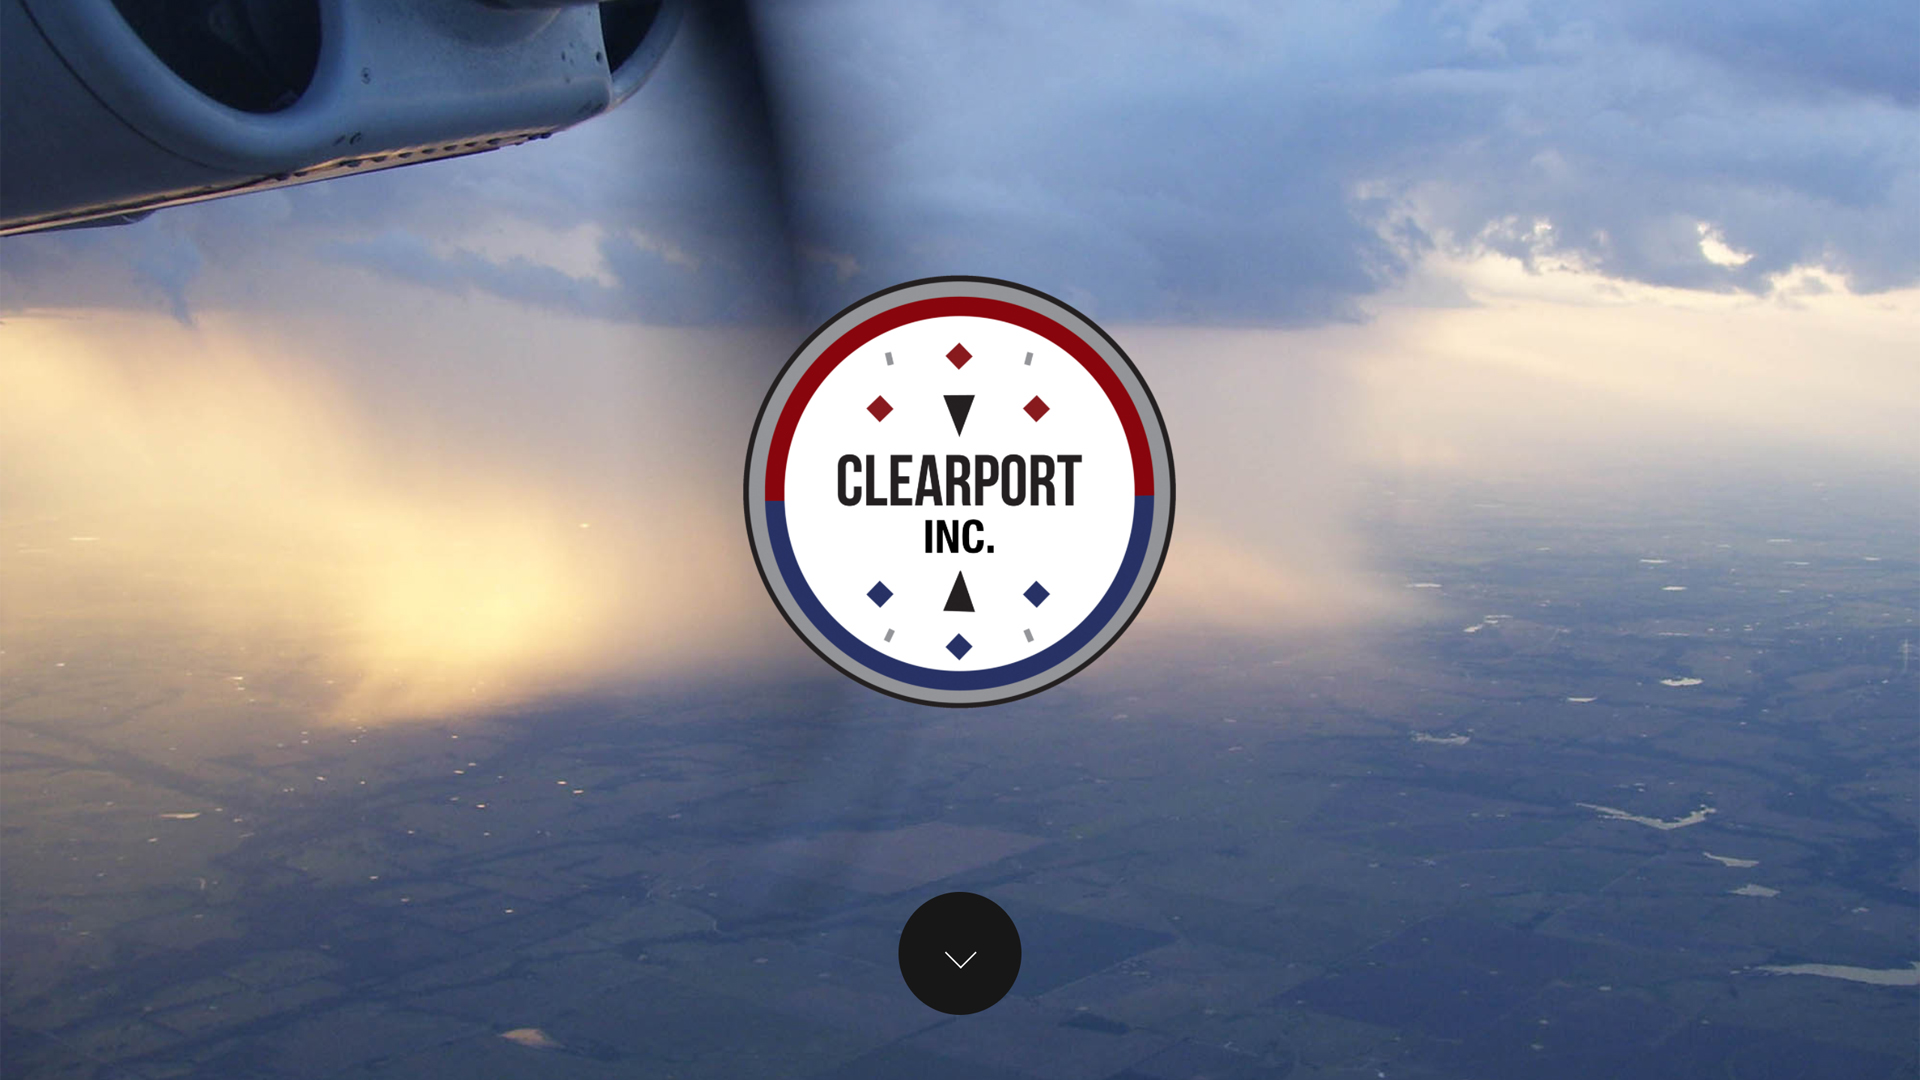 Clearport, INC website.jpg